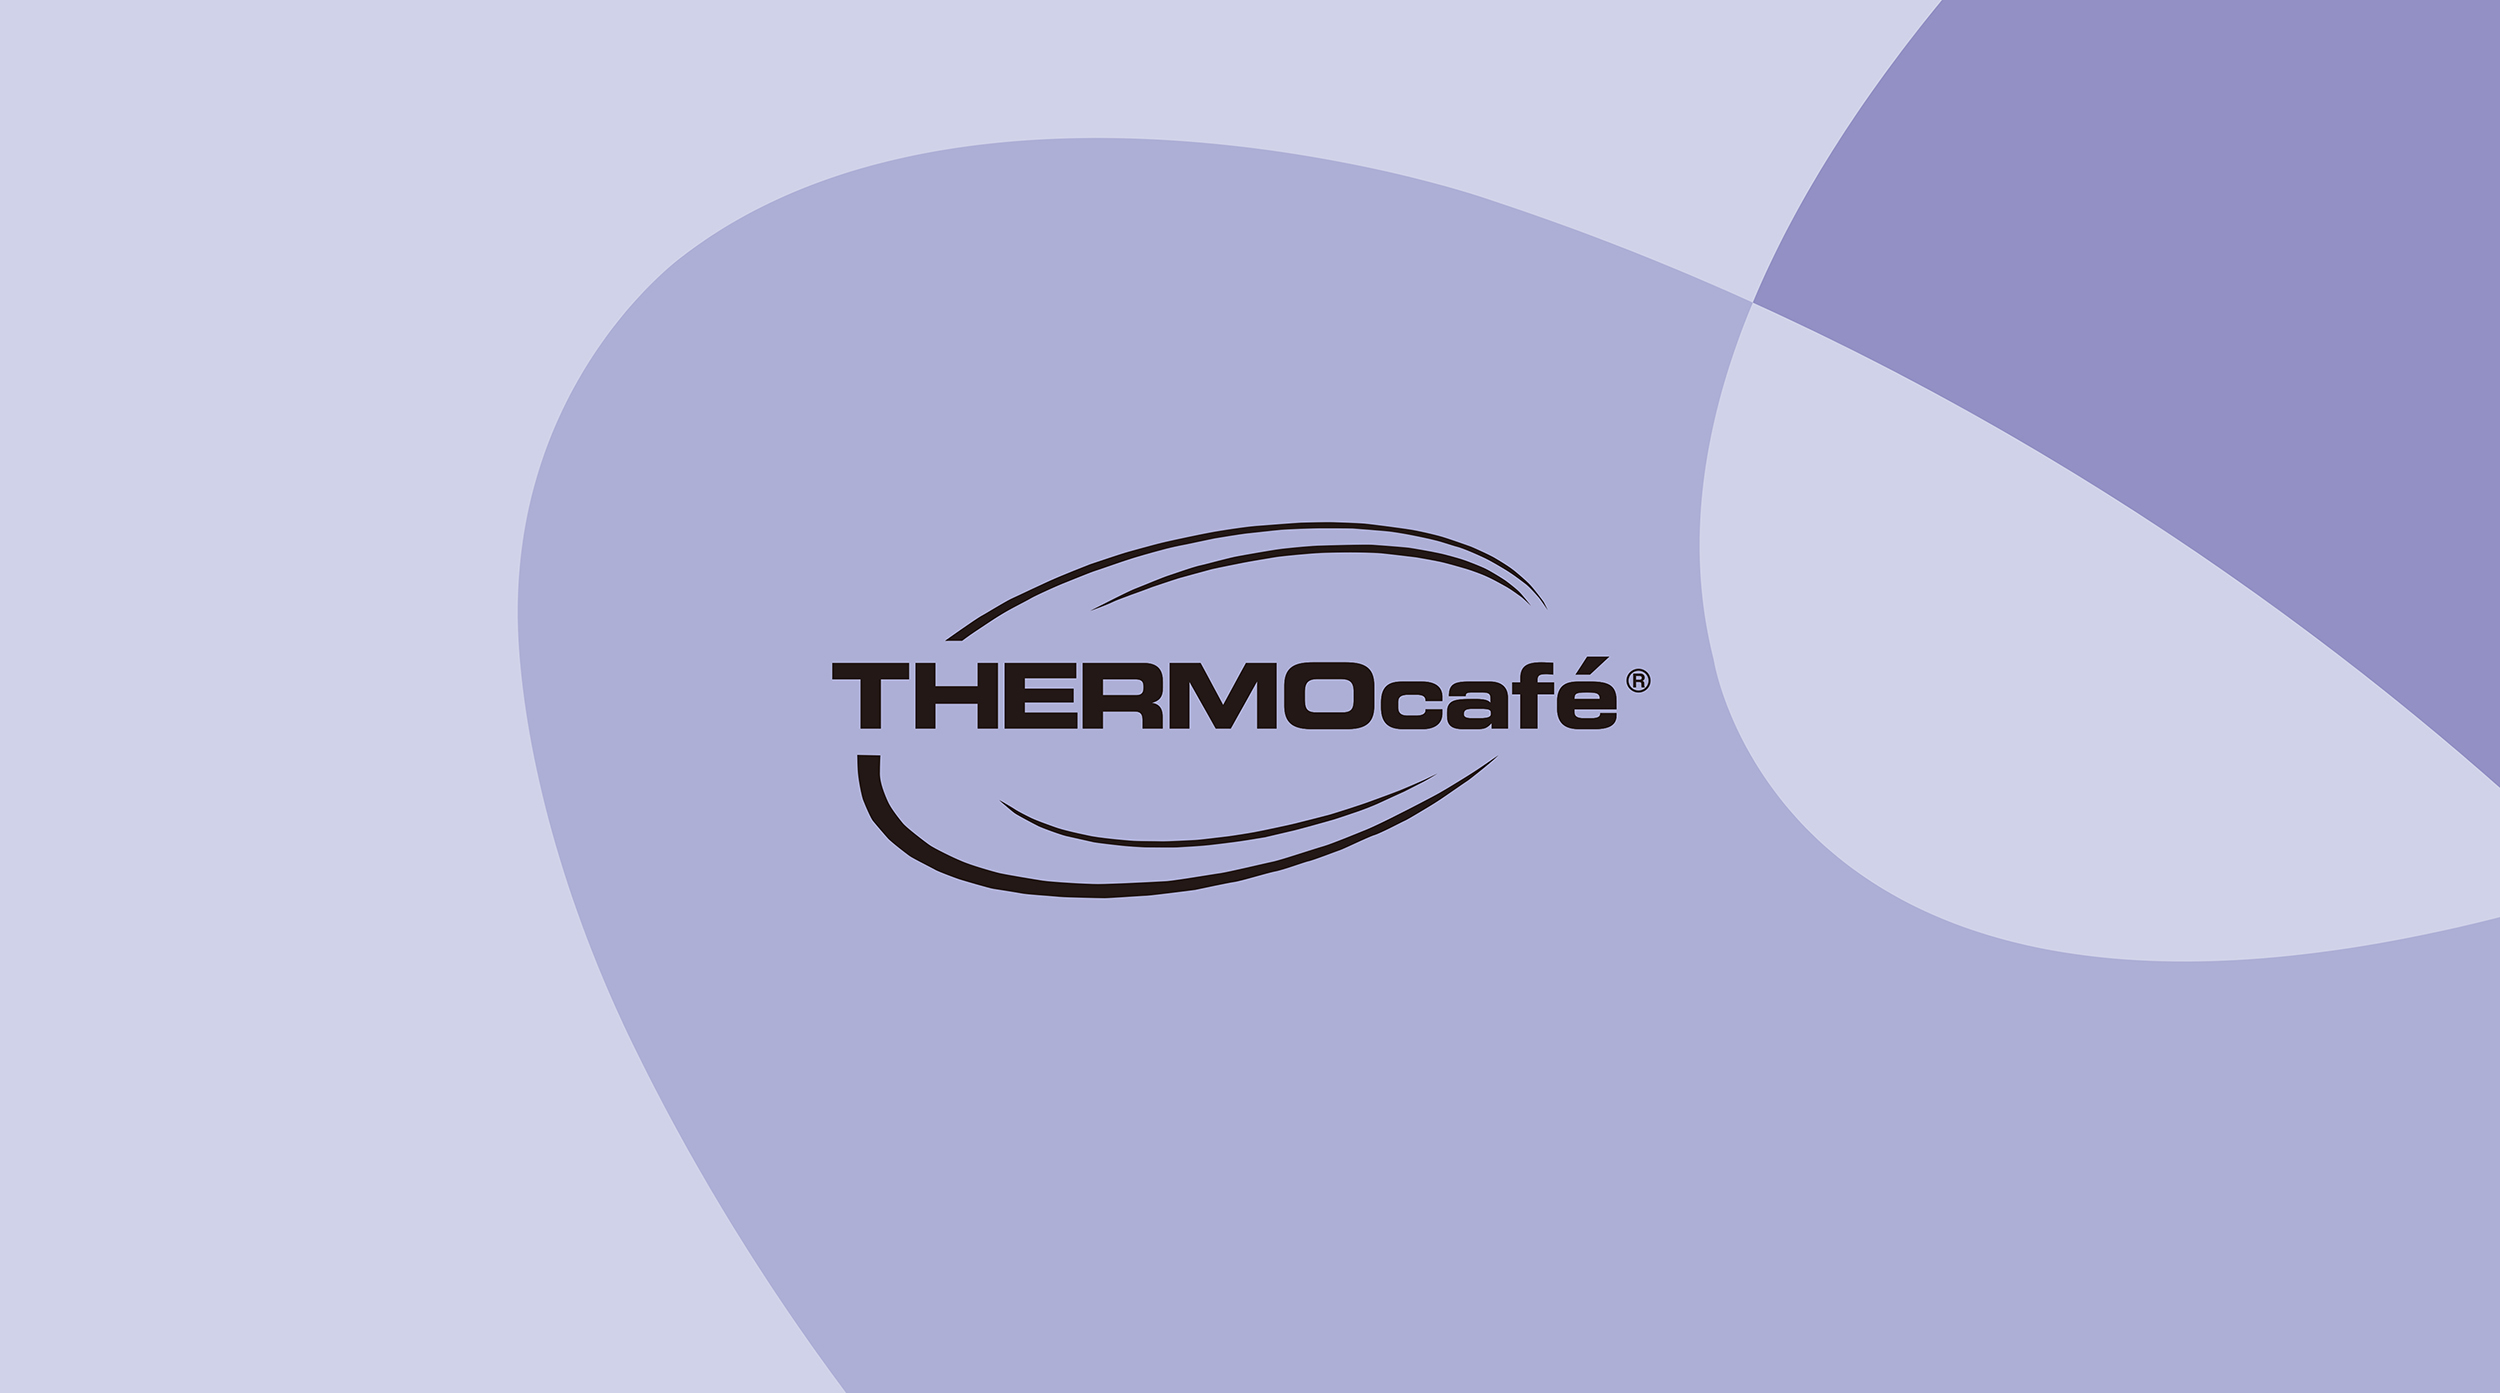 THERMOcafe' 凯菲